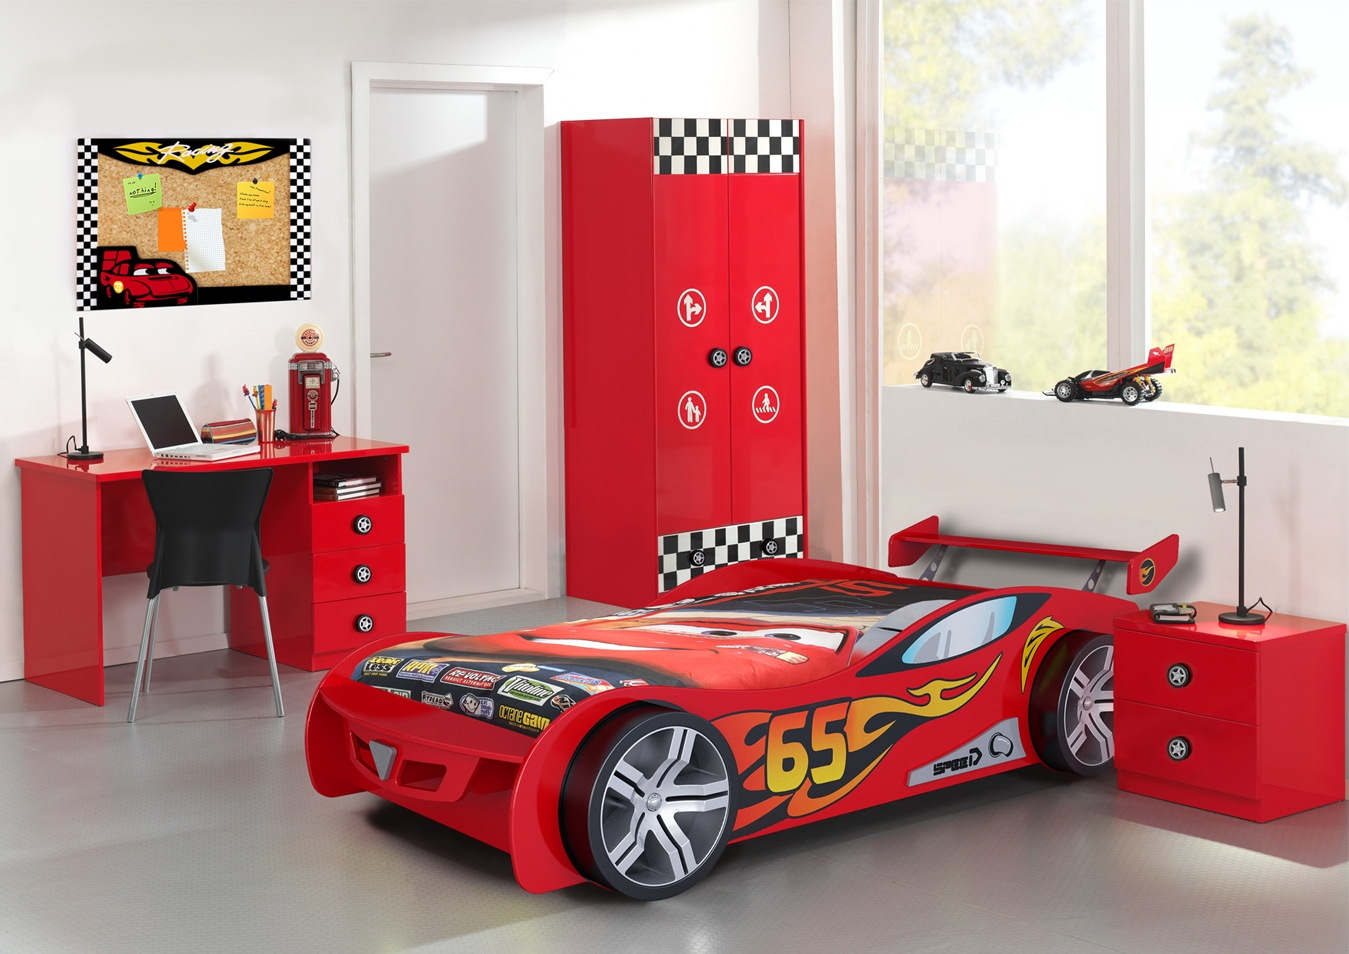 lit voiture pour enfant le mans 3 couleurs. Black Bedroom Furniture Sets. Home Design Ideas